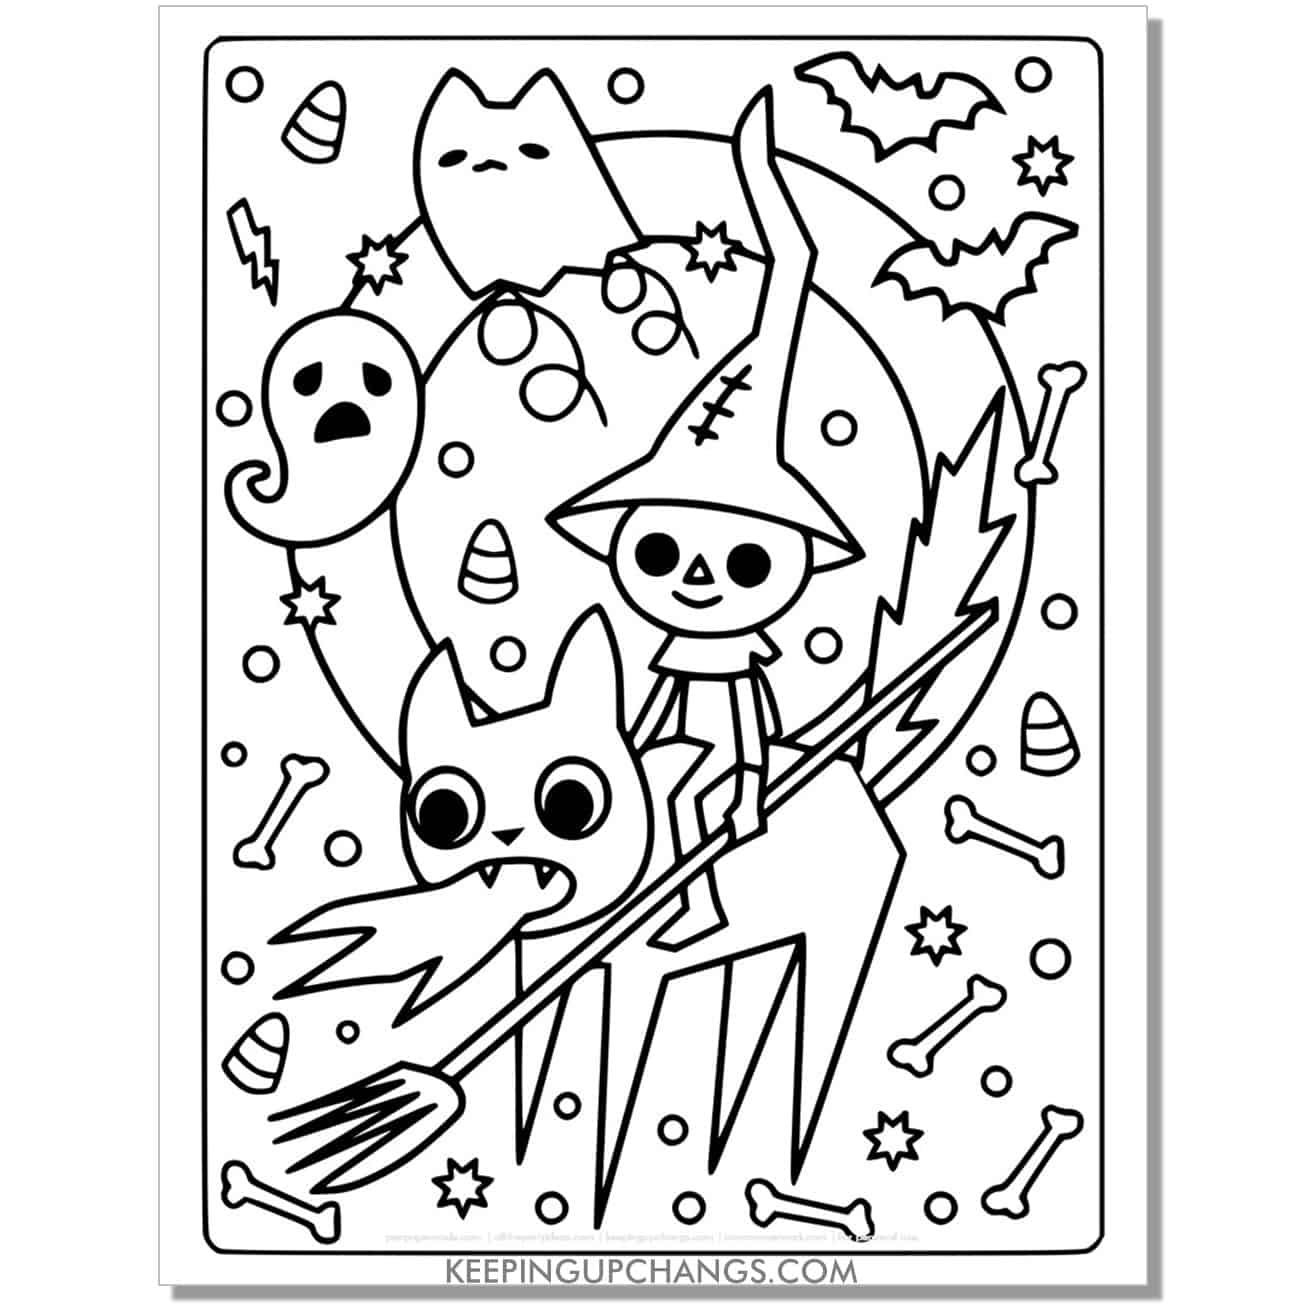 full size halloween cat dragon, ghost coloring page.